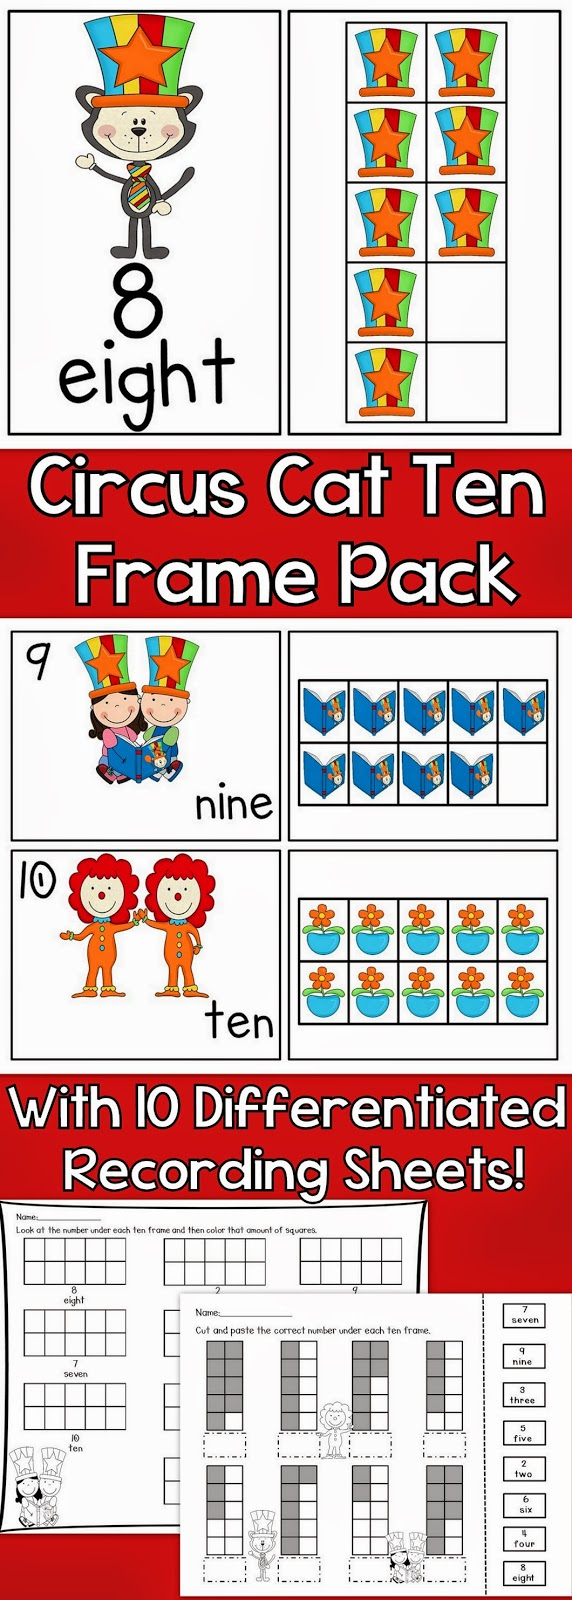 https://www.teacherspayteachers.com/Product/Circus-Cat-Ten-Frames-Posters-Workstation-Cards-and-Worksheets-1139035